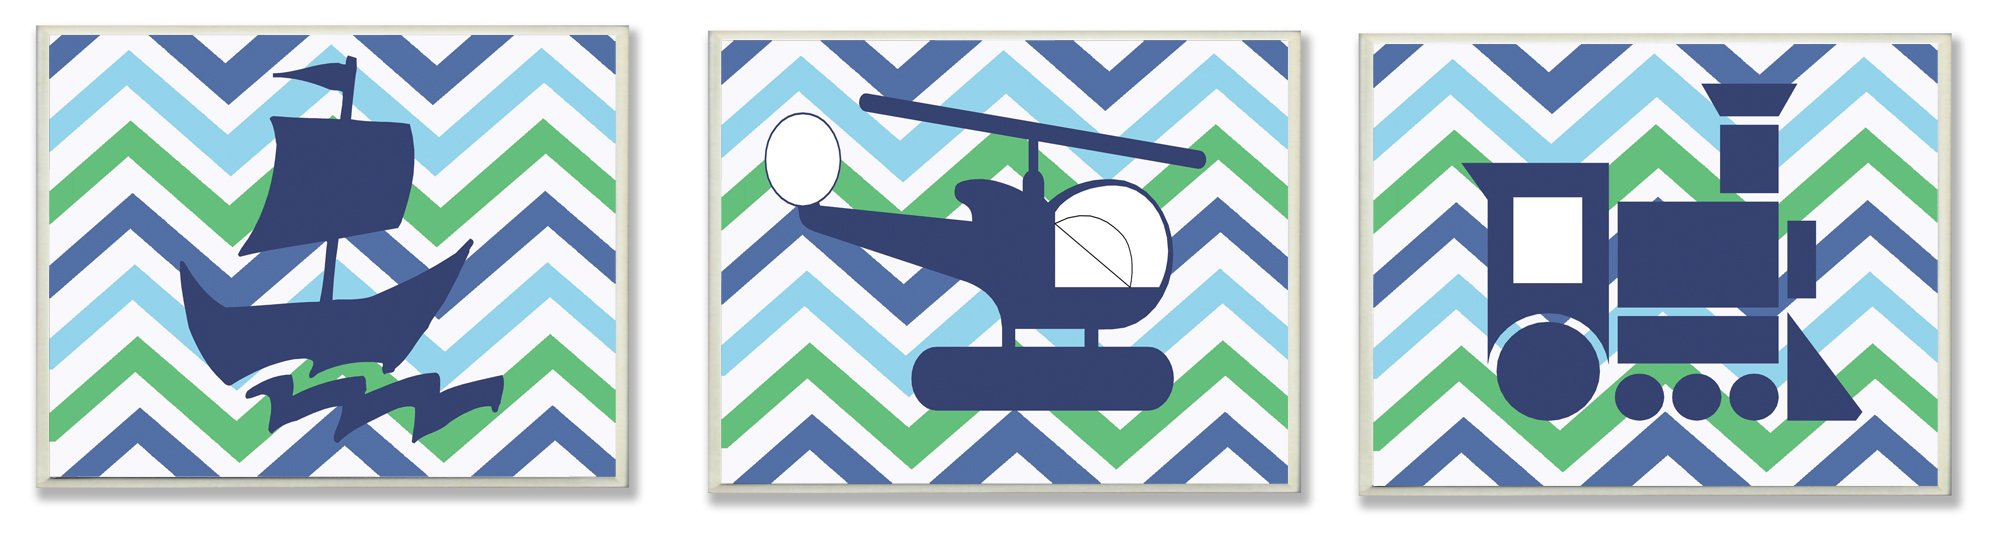 The Kids Room by Stupell Sail Boat, Helicopter, Train Green and Blue Chevron 3-Pc. Rectangle Wall Plaque Set, 11 x 0.5 x 15, Proudly Made in USA by The Kids Room by Stupell